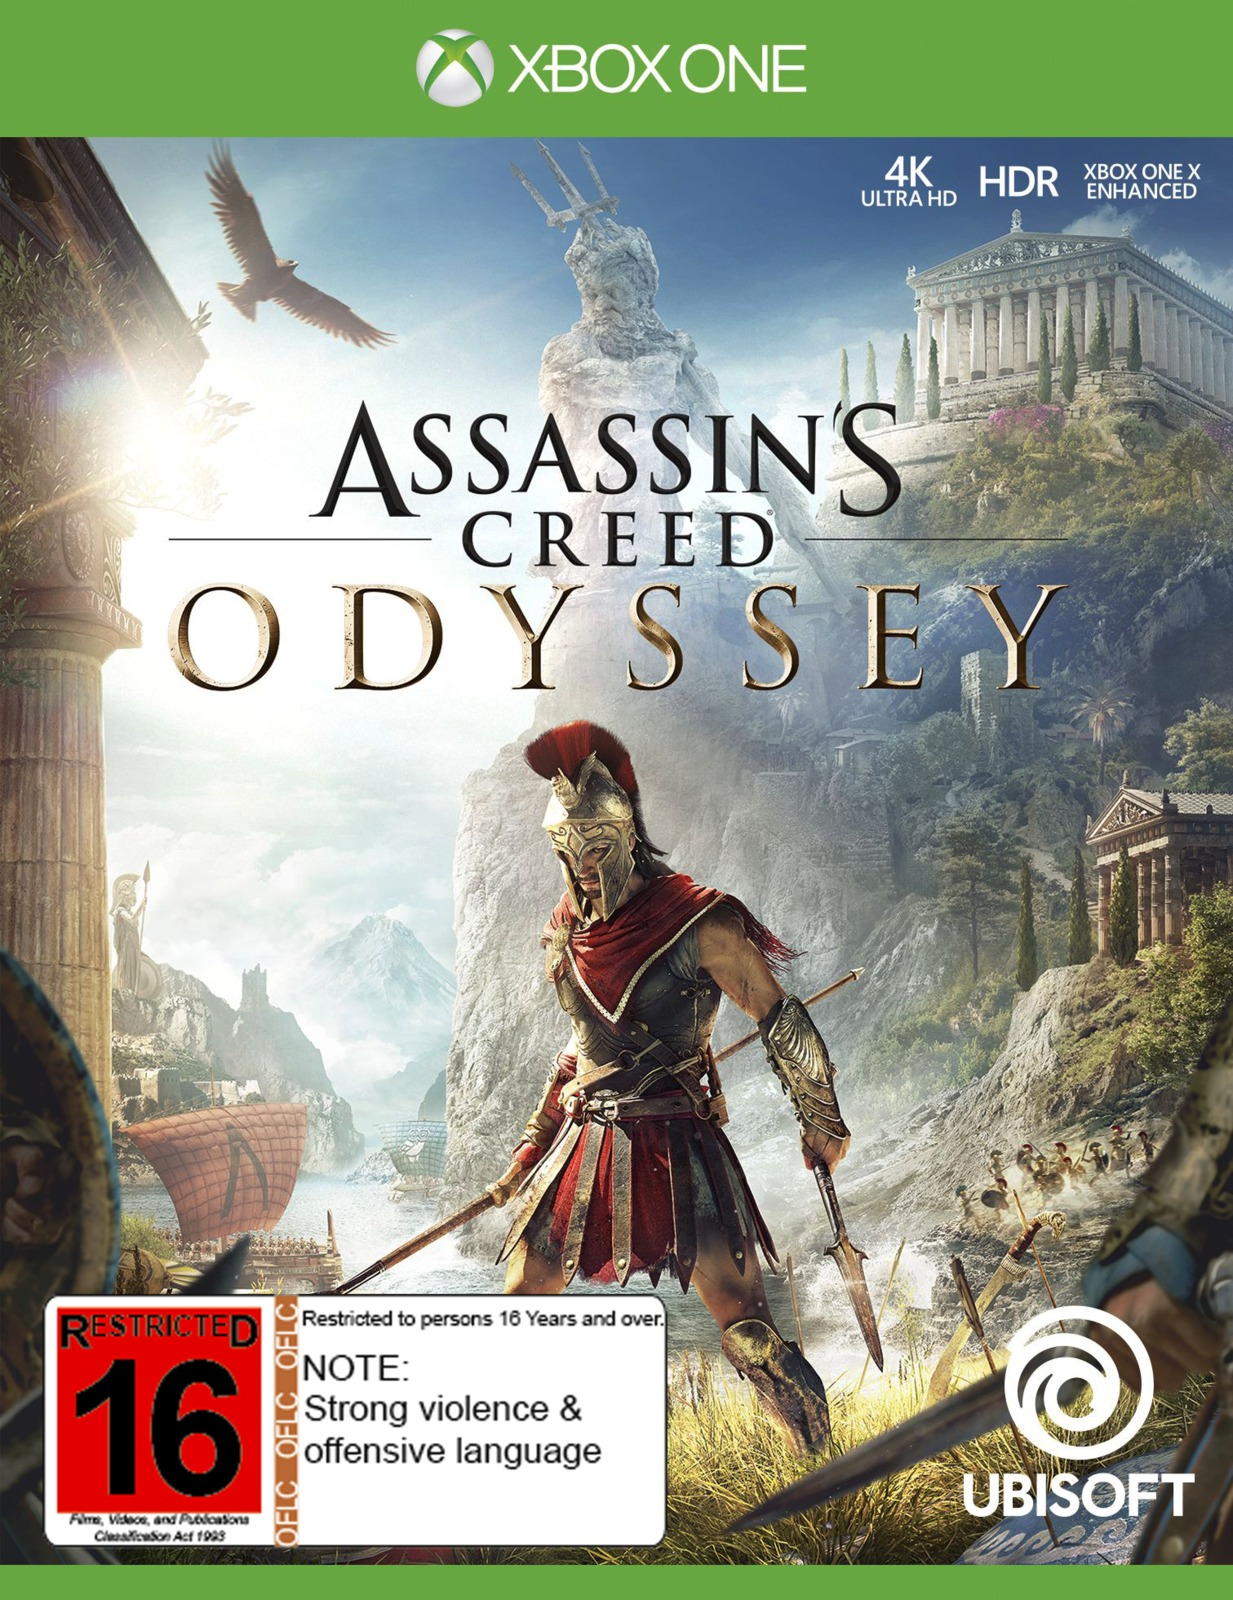 Assassin S Creed Odyssey Xbox One On Sale Now At Mighty Ape Nz